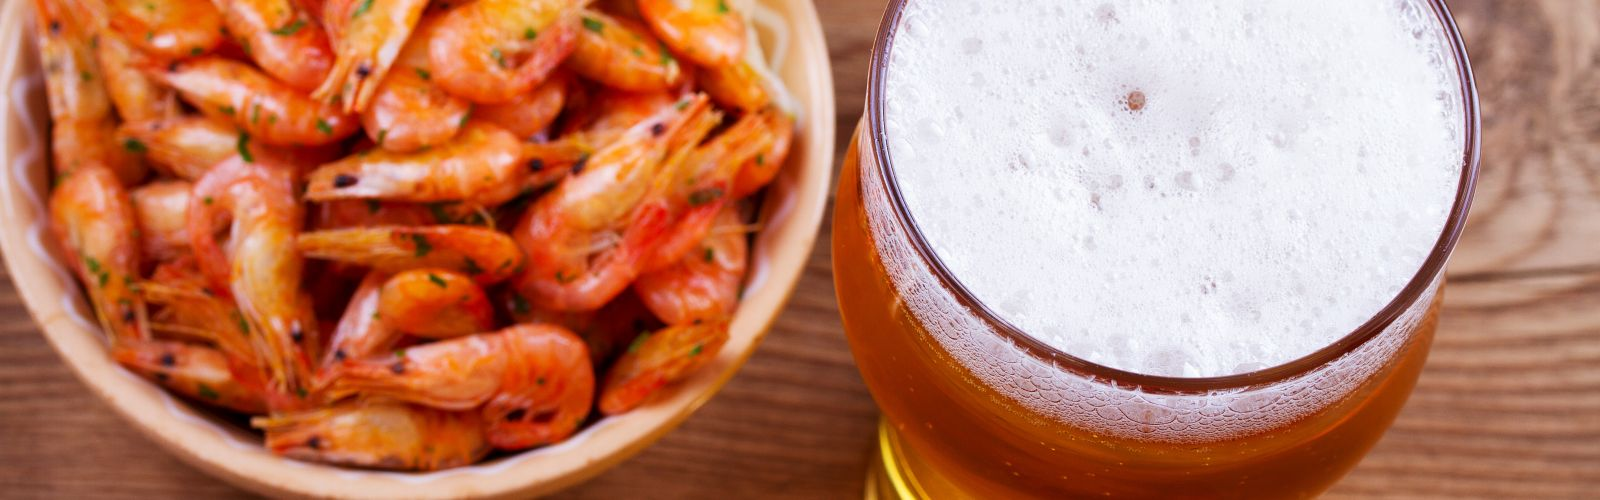 A bowl of shrimp and a glass of beer